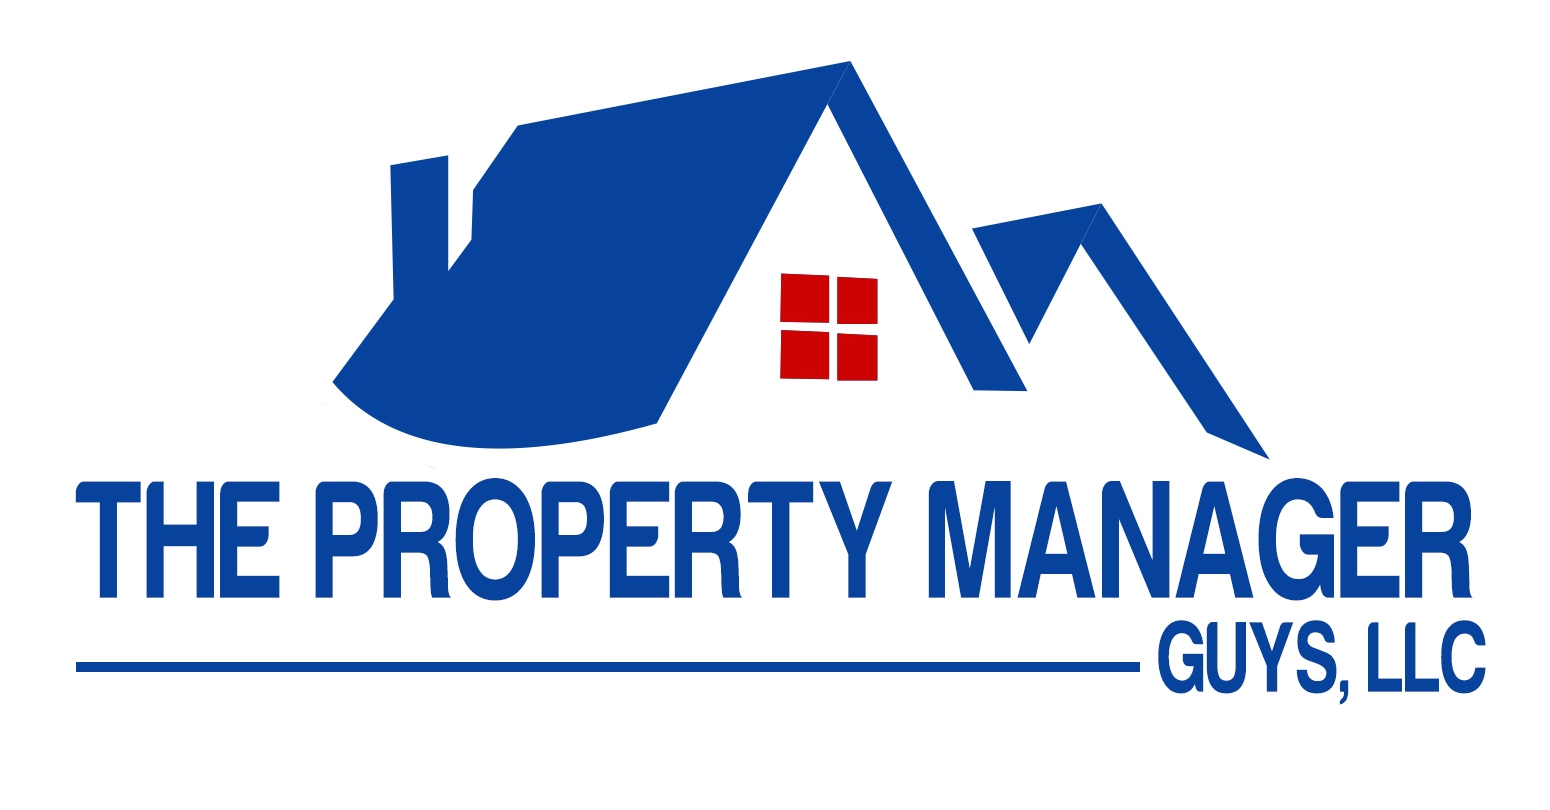 Greg Bond and The Property Manager Guys are turnkey rental property providers in Orlando Florida